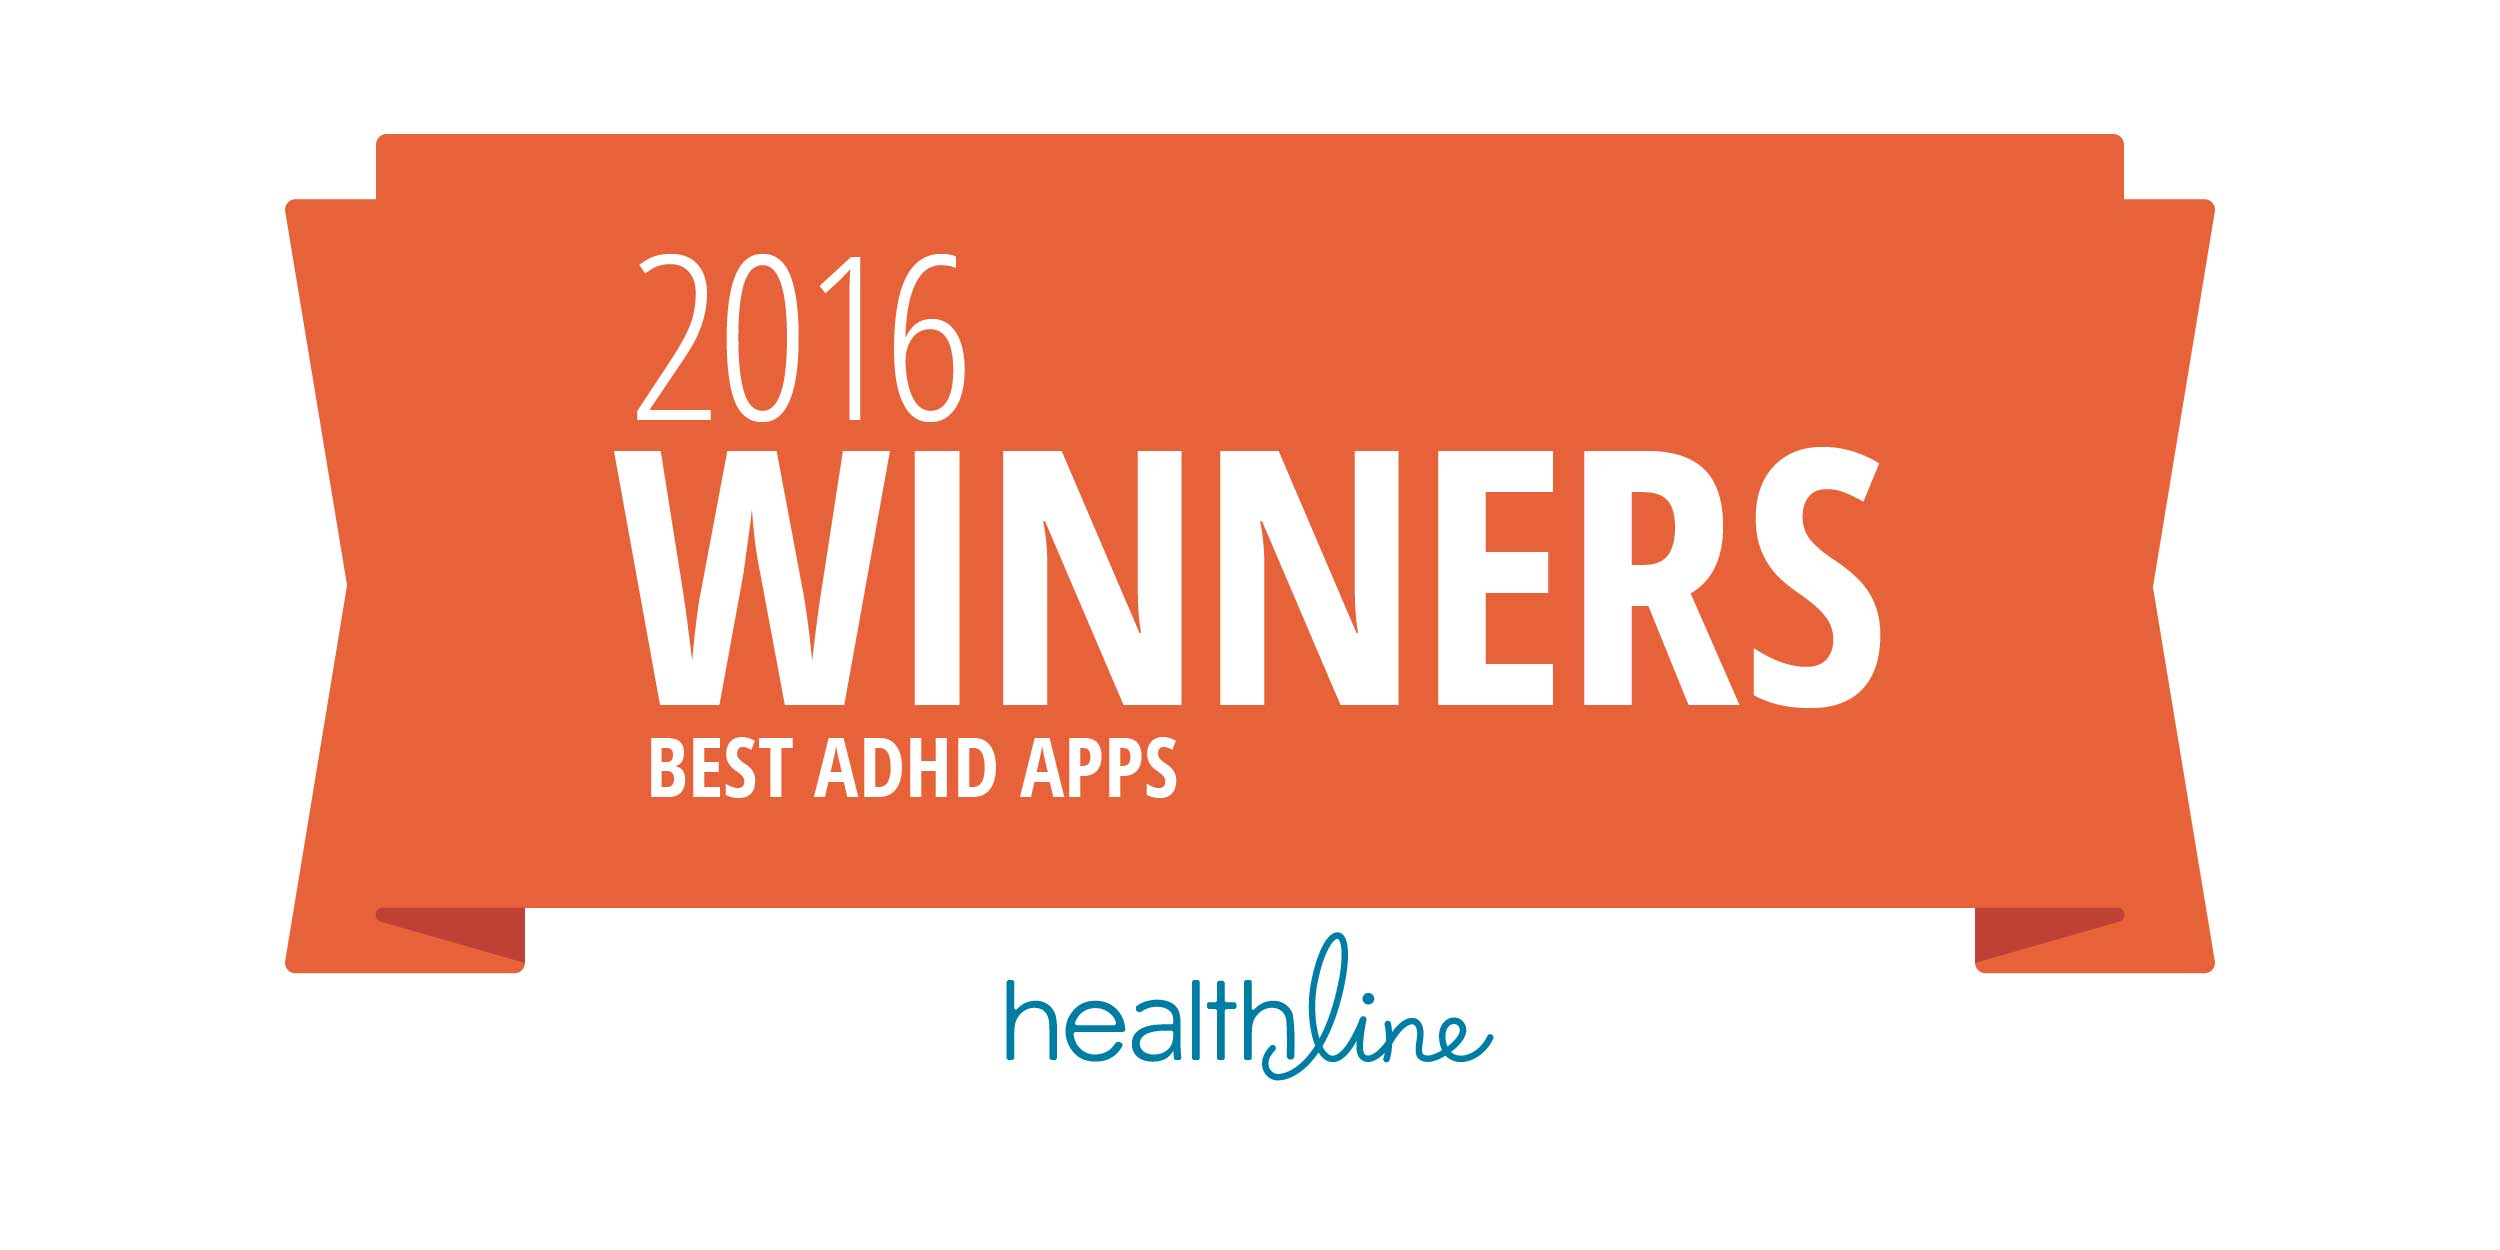 The 15 Best ADHD Apps of 2016